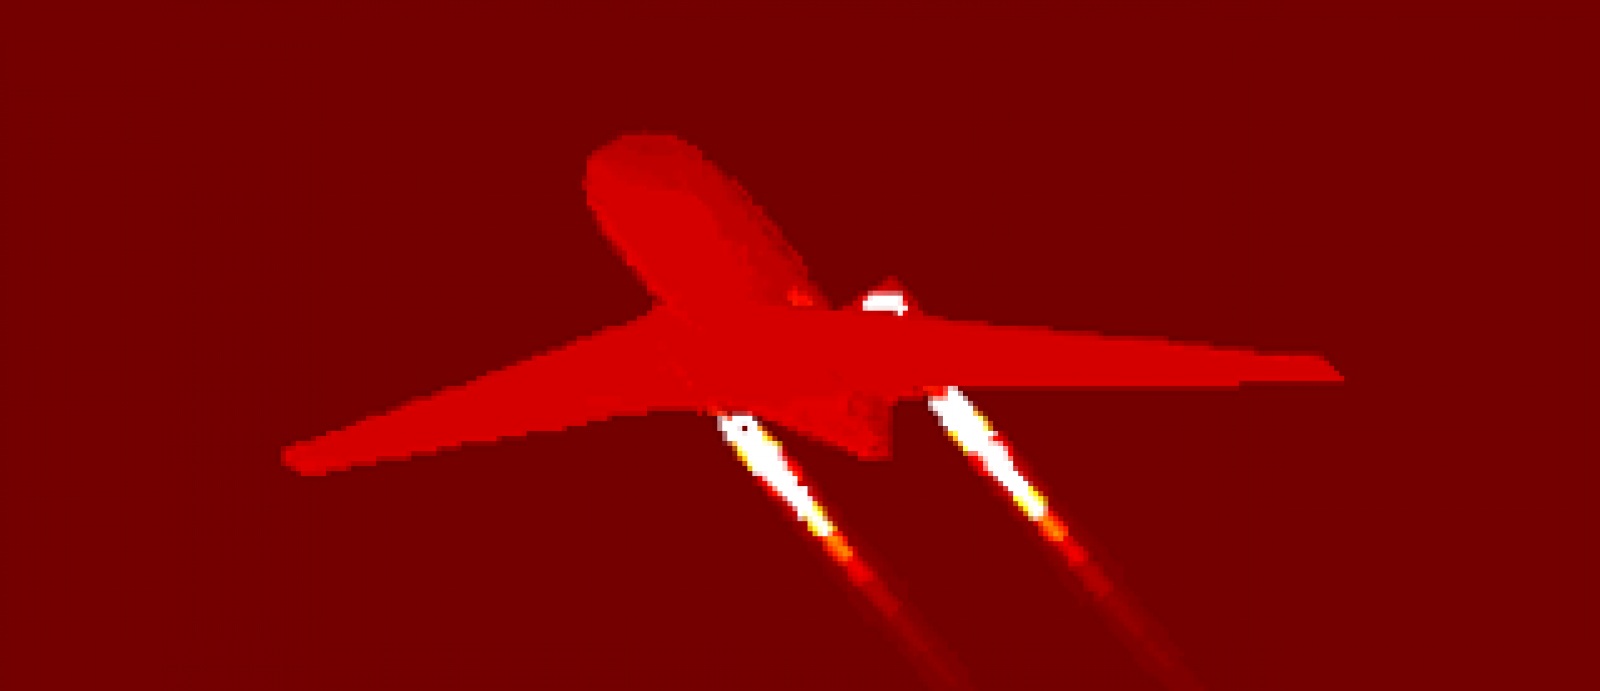 Modeled infrared signature of an aircraft.